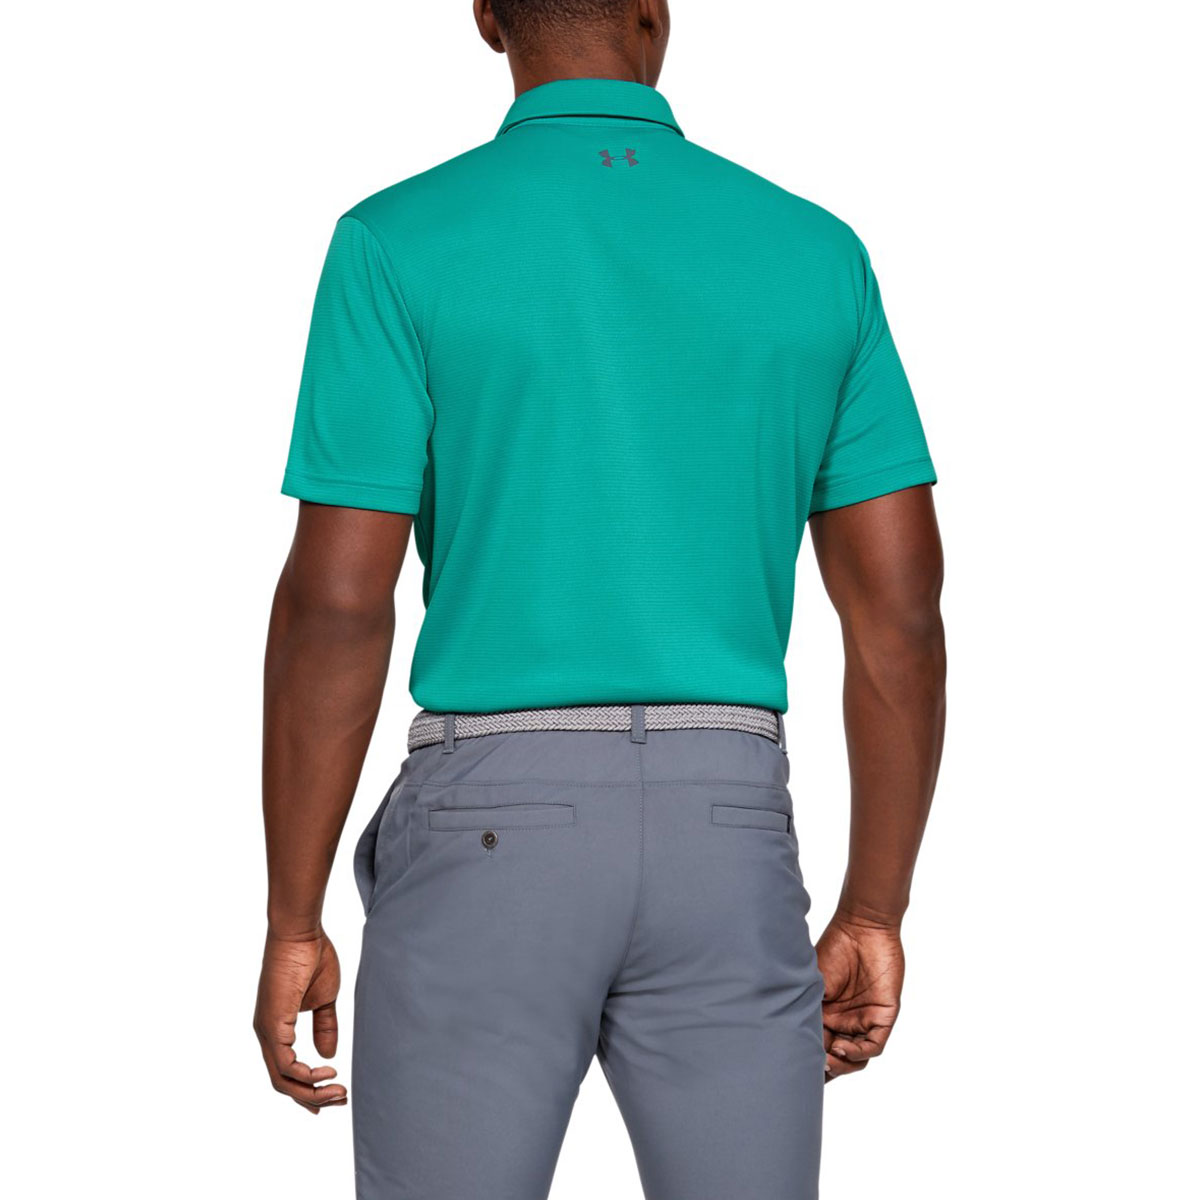 Under-Armour-Mens-2019-Golf-Tech-Wicking-Textured-Soft-Light-Polo-Shirt thumbnail 71